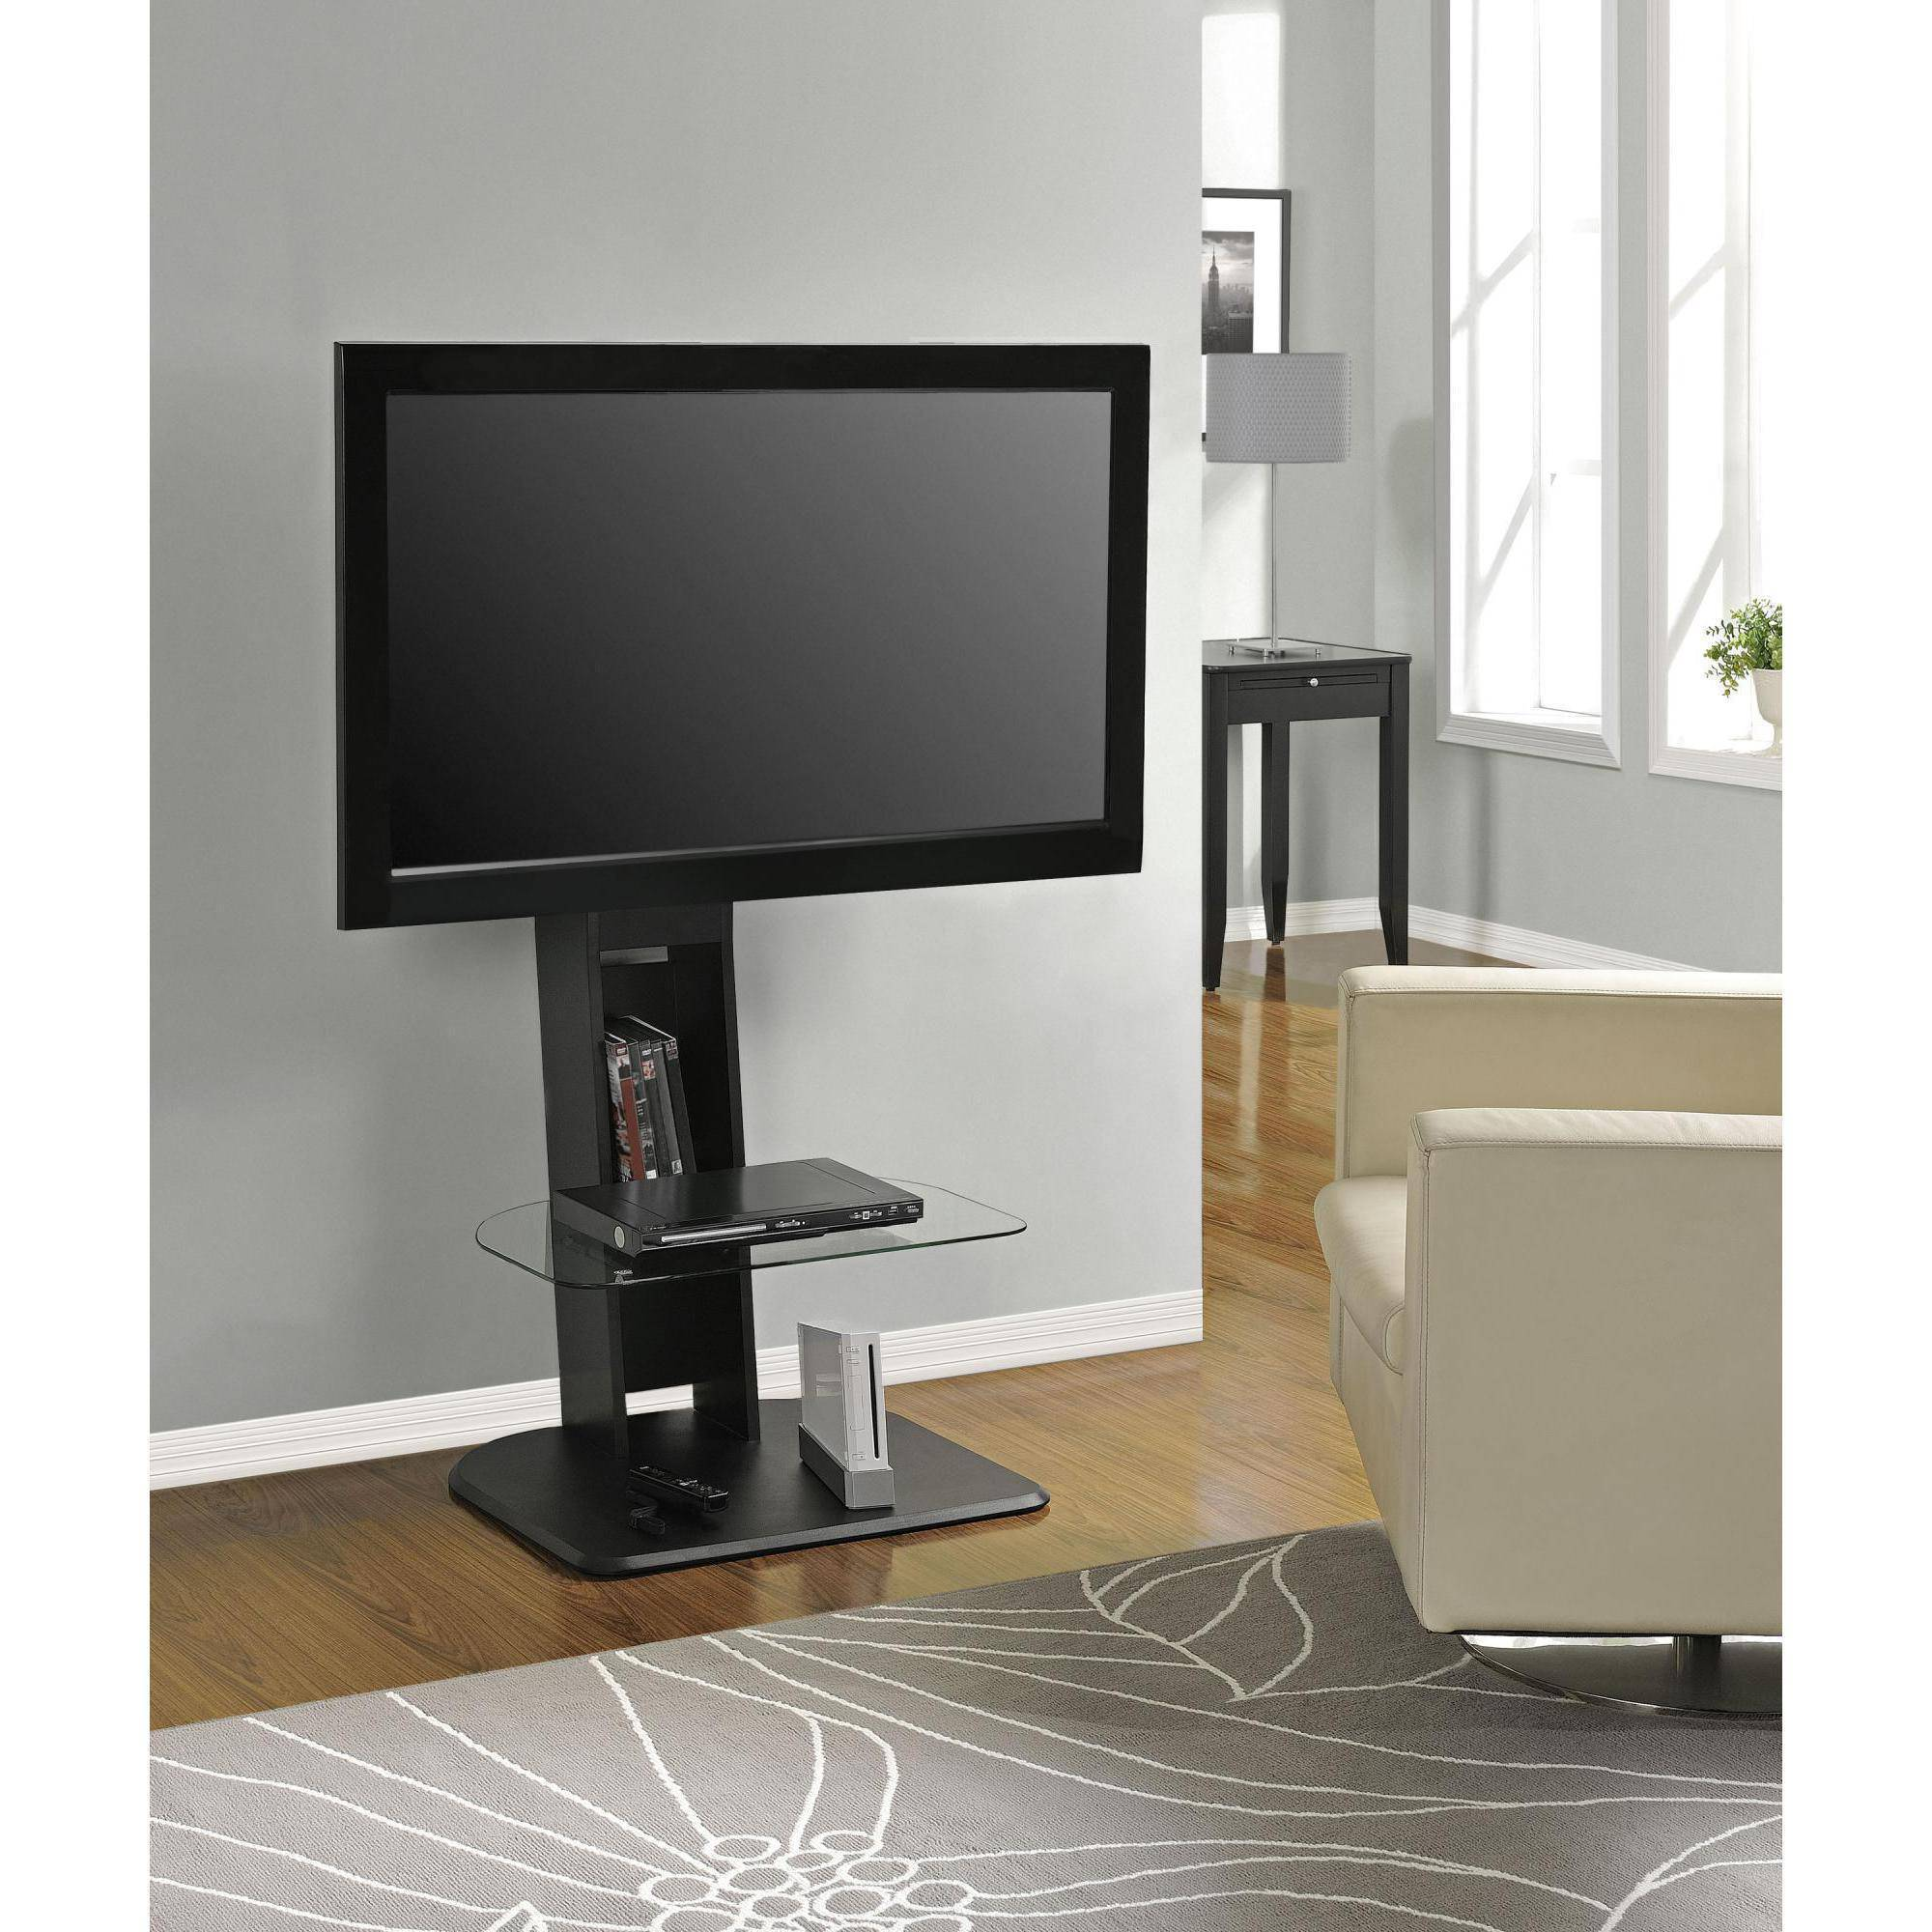 TV Stands & Entertainment Centers - Walmart.com